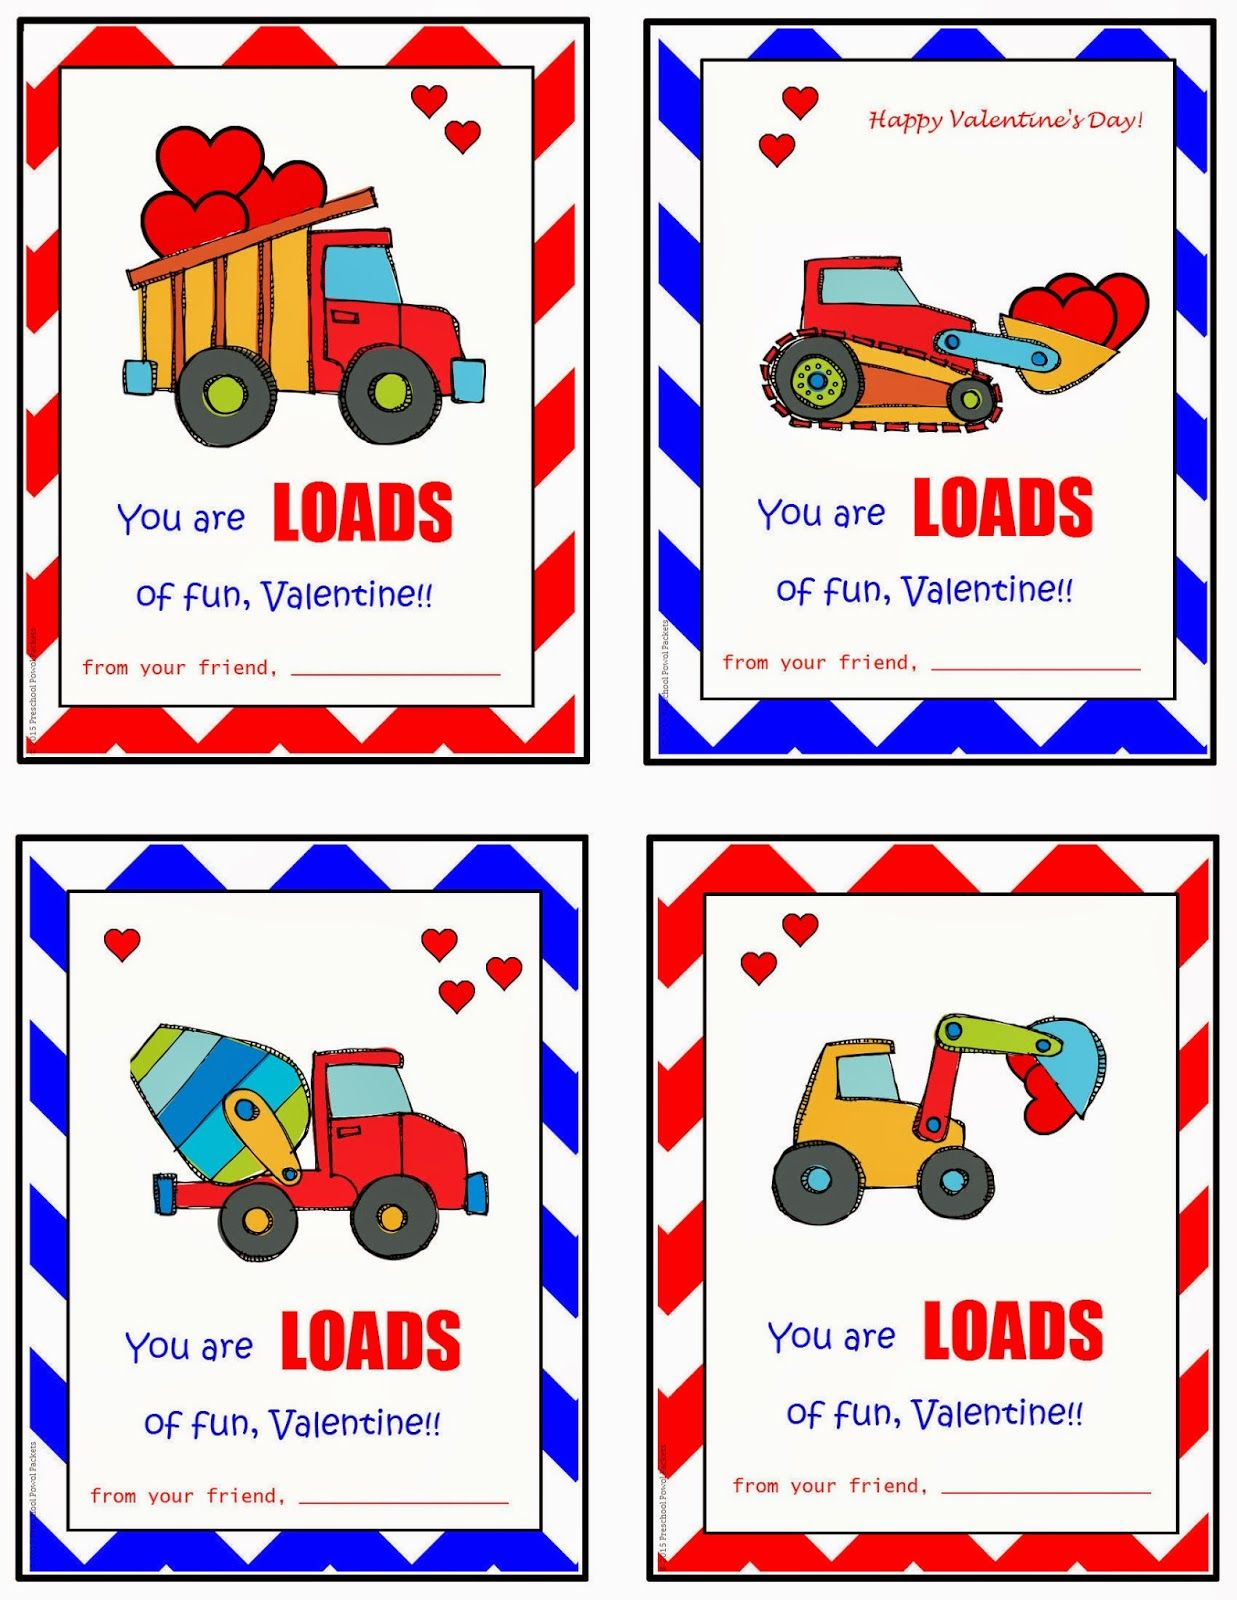 Free Printable Construction Truck Valentines